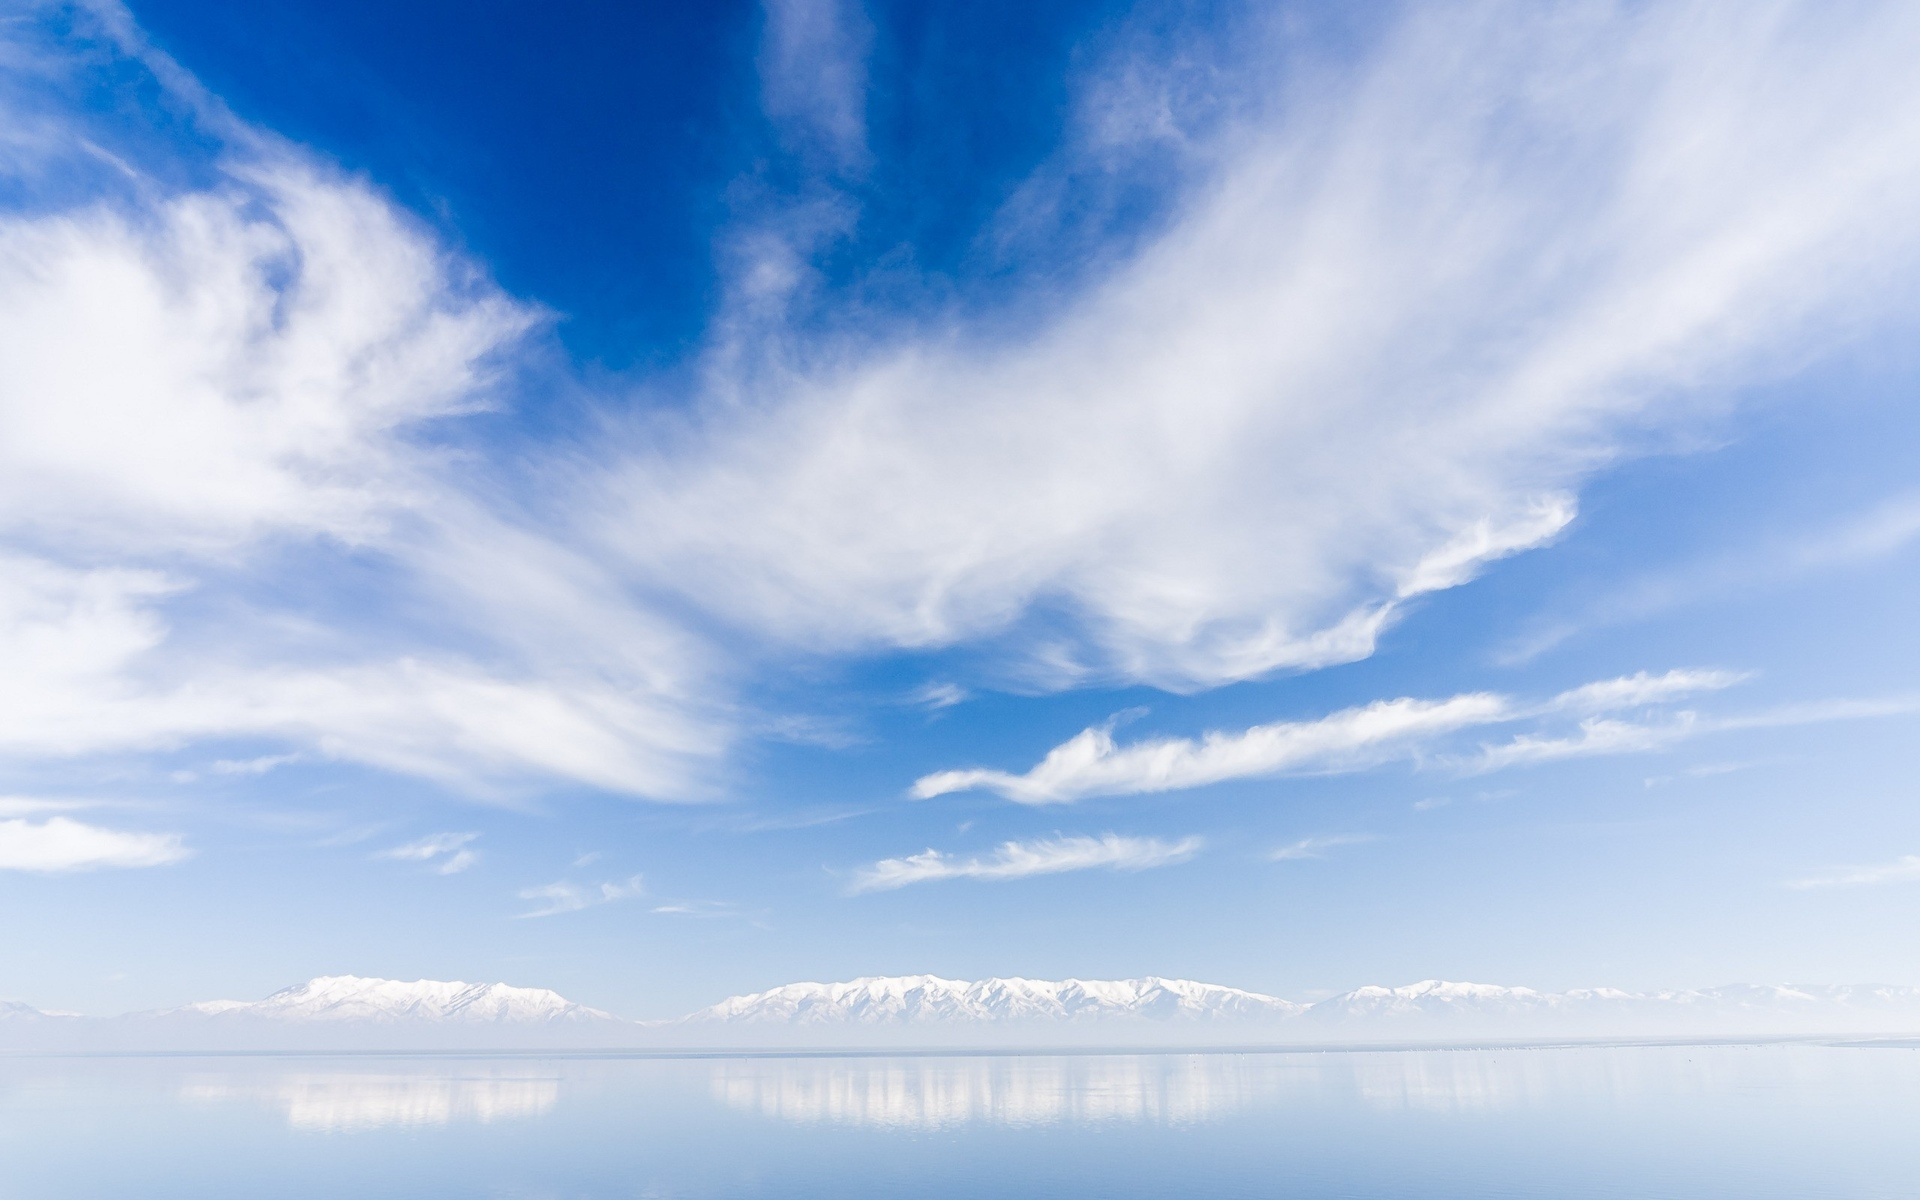 Nubes sobre un lago hd 1920x1200 - imagenes - wallpapers gratis ...